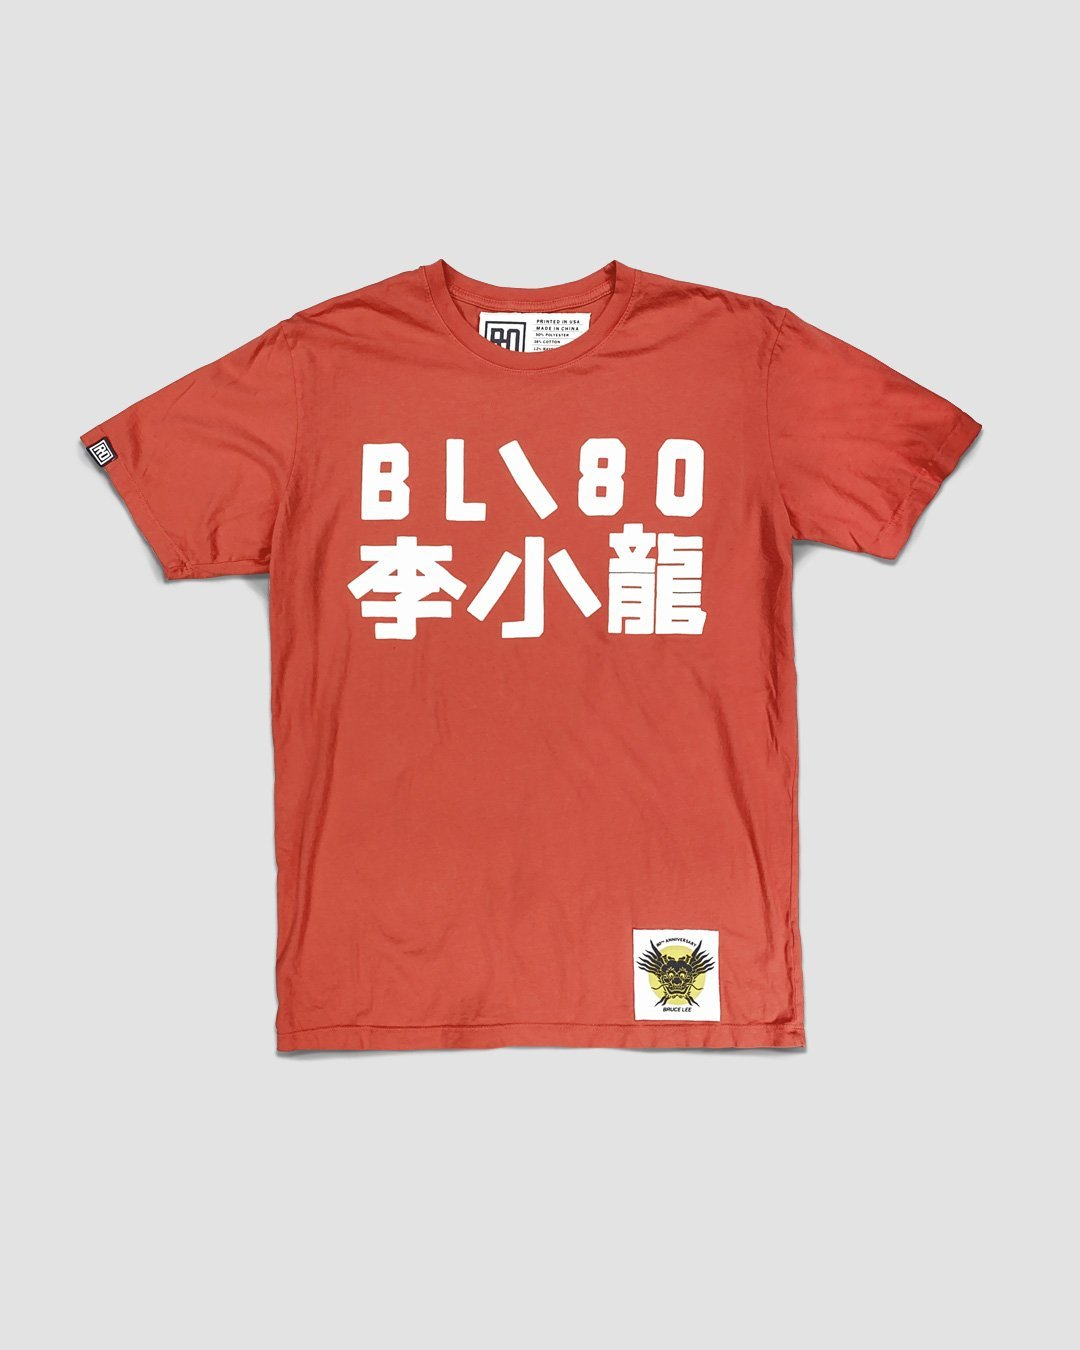 Bruce Lee 80 Memento Tee - Roots of Inc dba Roots of Fight